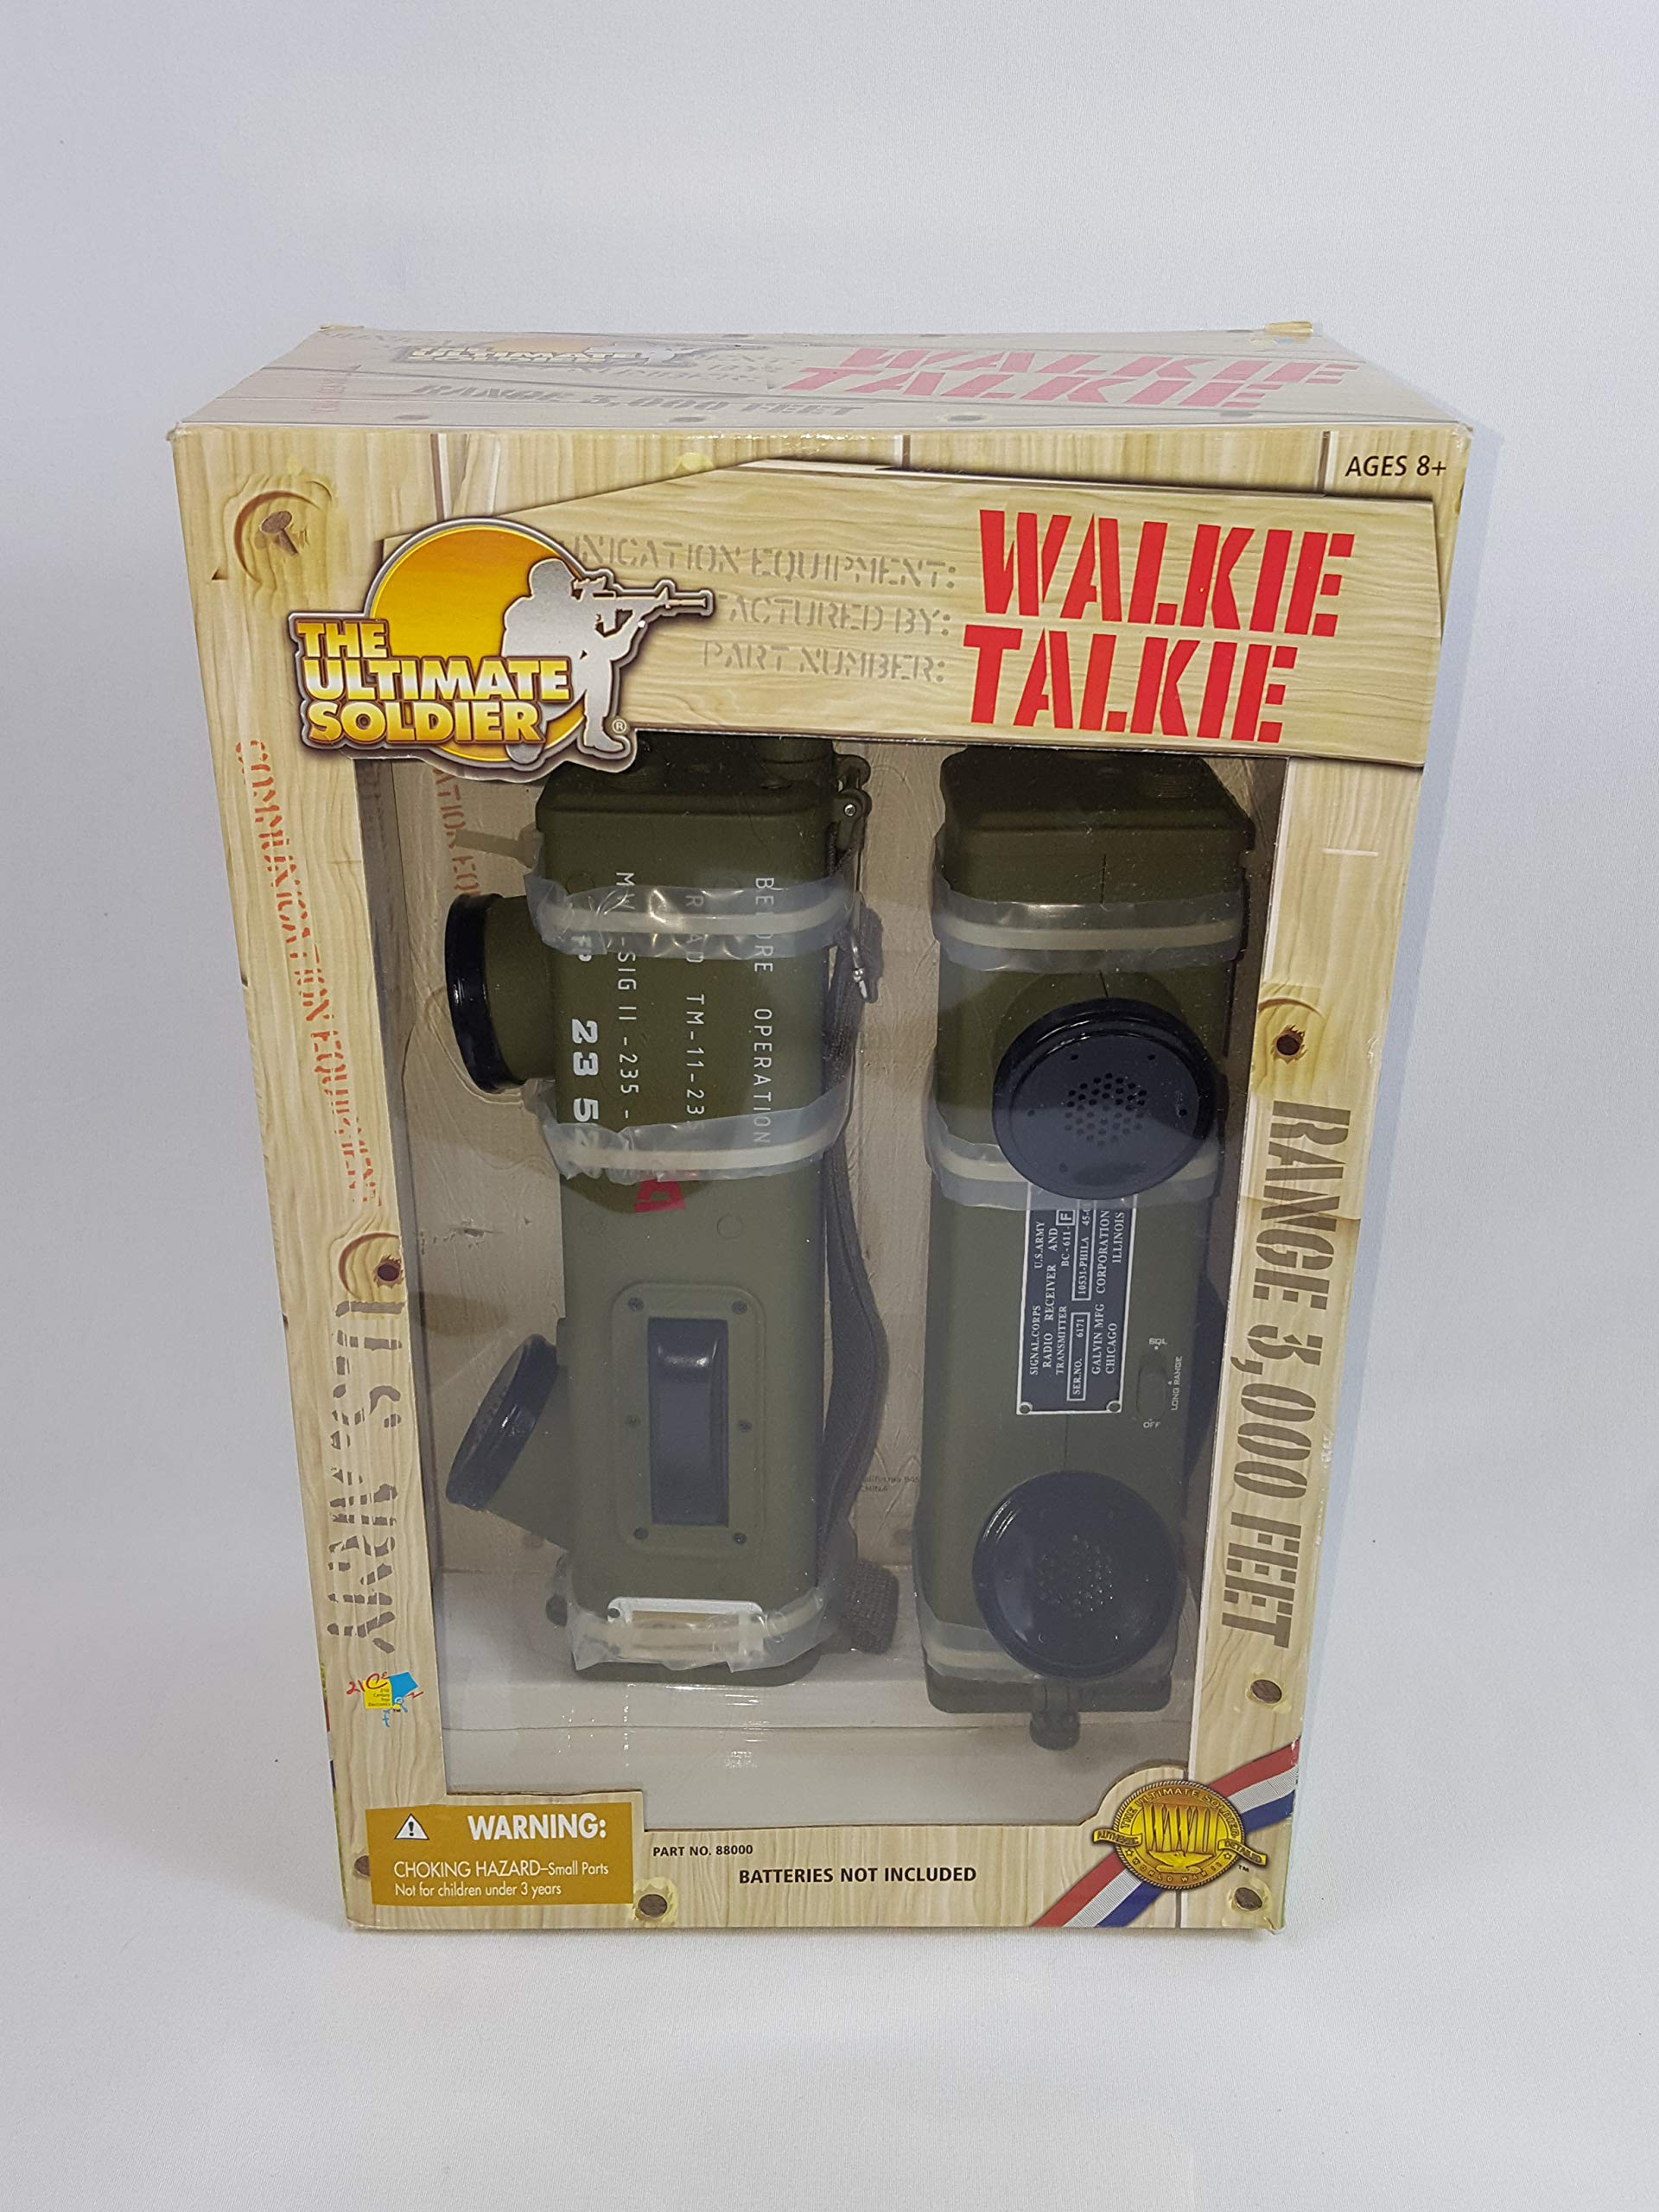 21st Century Toys The Ultimate Soldier Walkie Talkie 2002 by 21st Century Toys (Image #1)